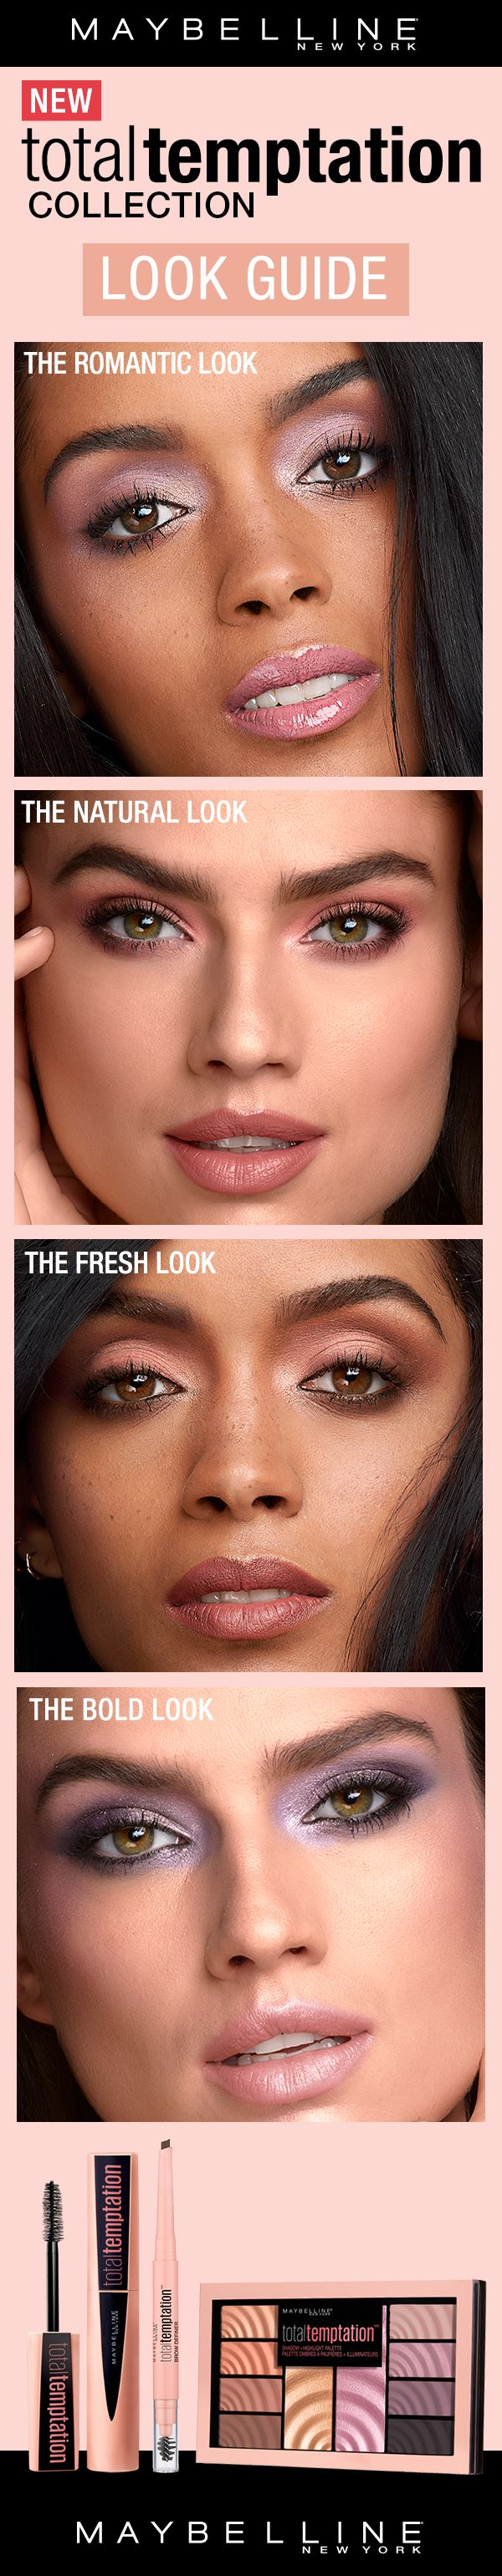 The most addictive makeup yet. Creamy color. Seductive scent. Ravishing results. Give in to Total Temptation. Featuring a Eyeshadow and Highlighter palette, a brow definer and a coconut-scented mascara. Create any kind of makeup look with this versatile collection.